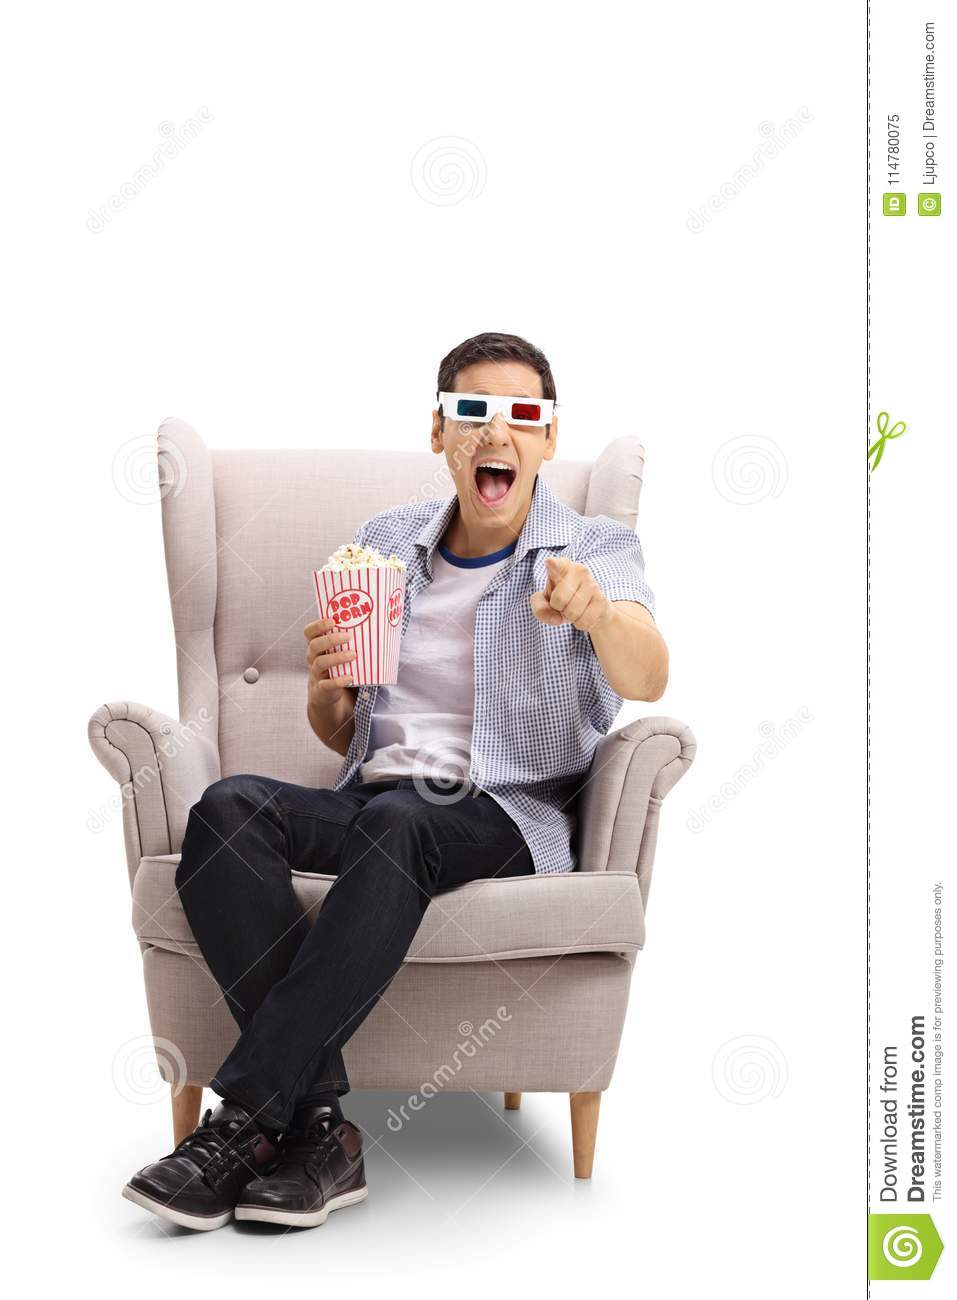 Young man with 3D glasses and popcorn seated in an armchair laughing and pointing at the camera